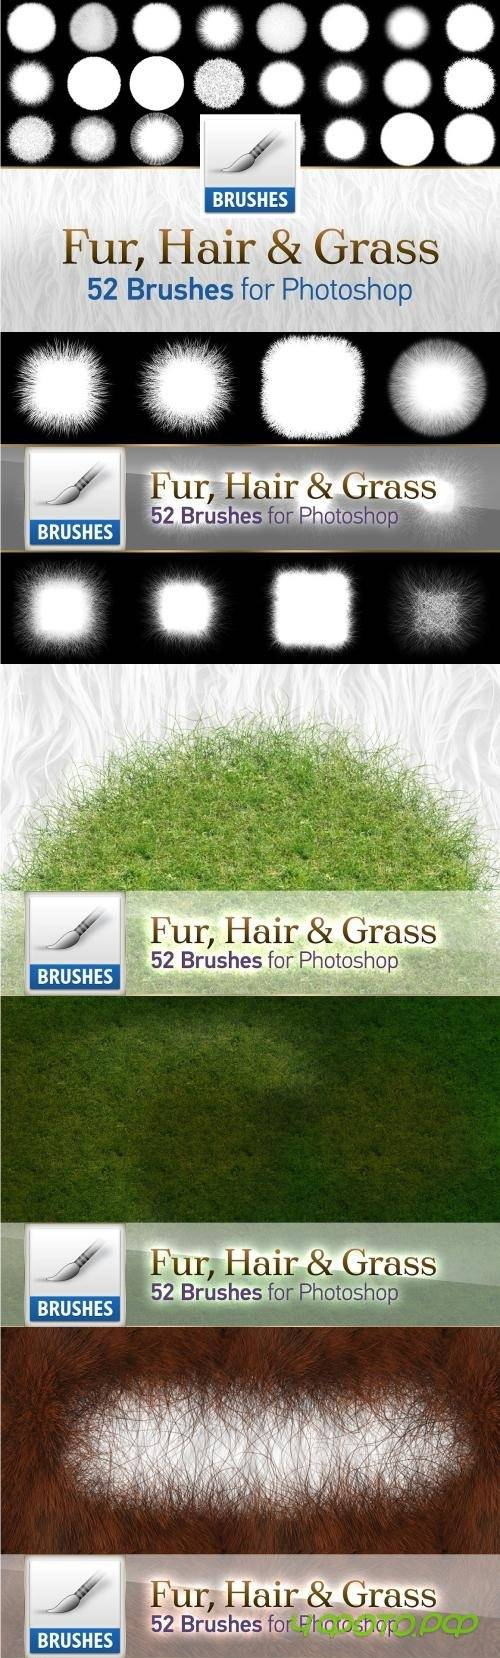 Fur, Hair and Grass Brushes - 1558188